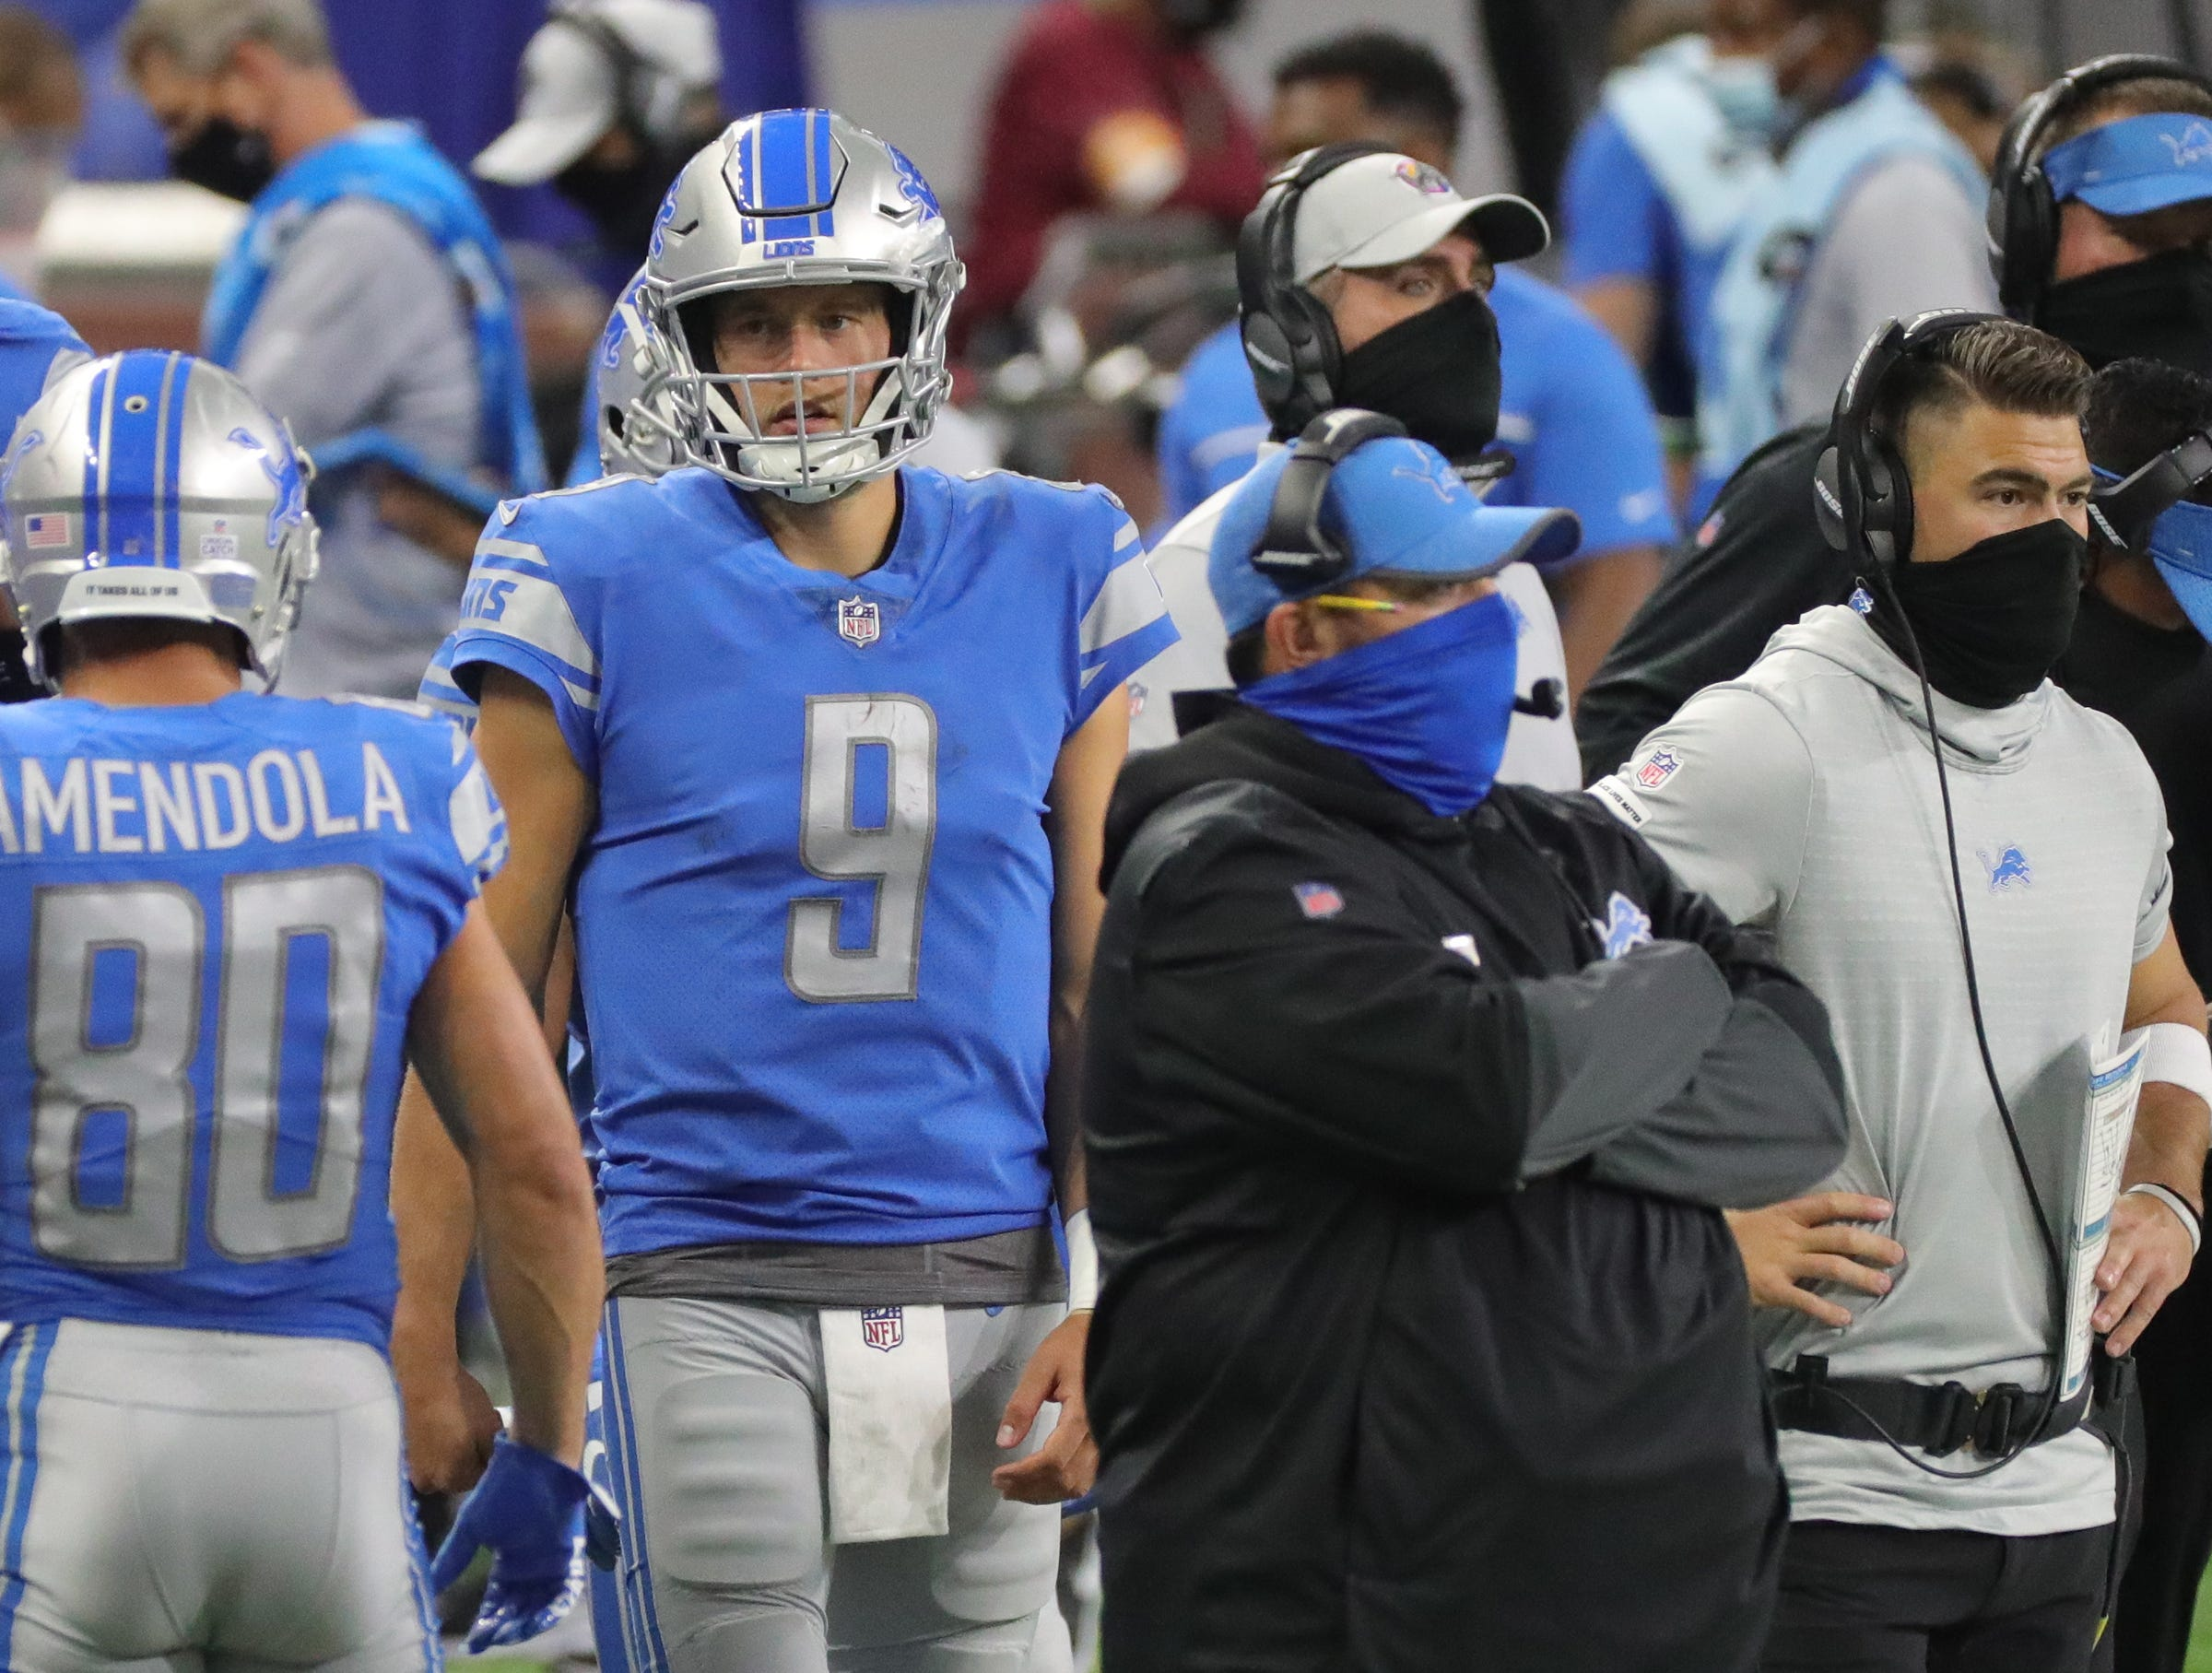 Detroit Lions coaches know why Matthew Stafford's play has been mediocre